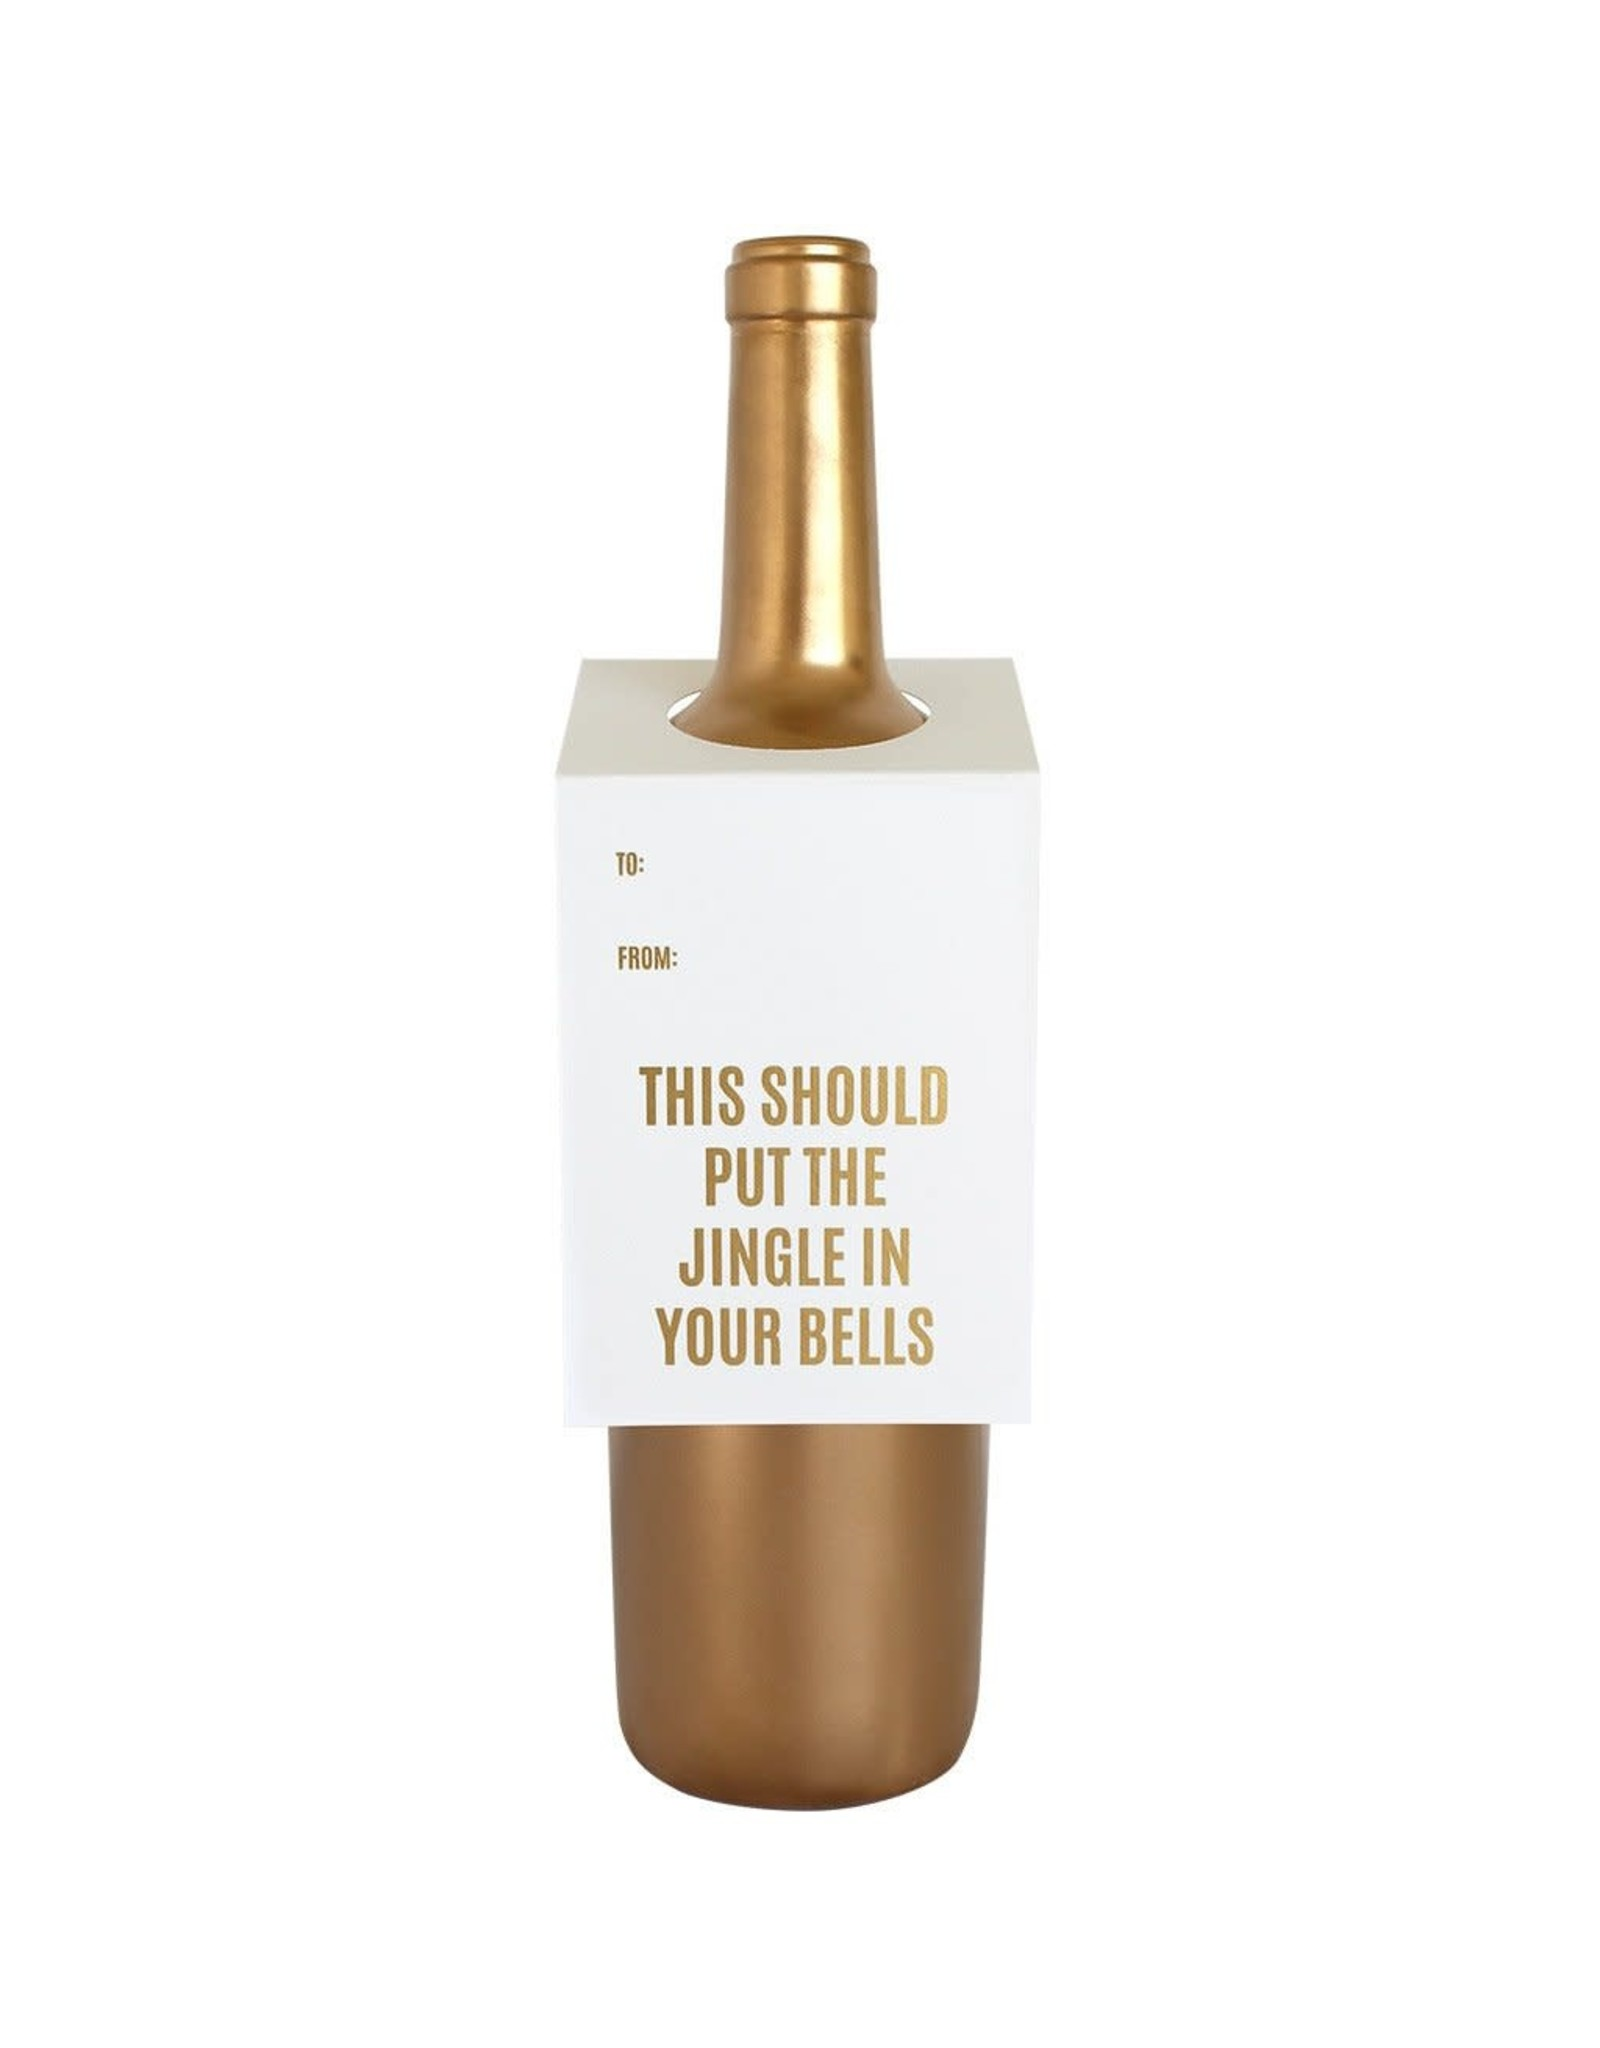 Chez Gagne Jingle In Your Bells - Wine & Spirit Tag